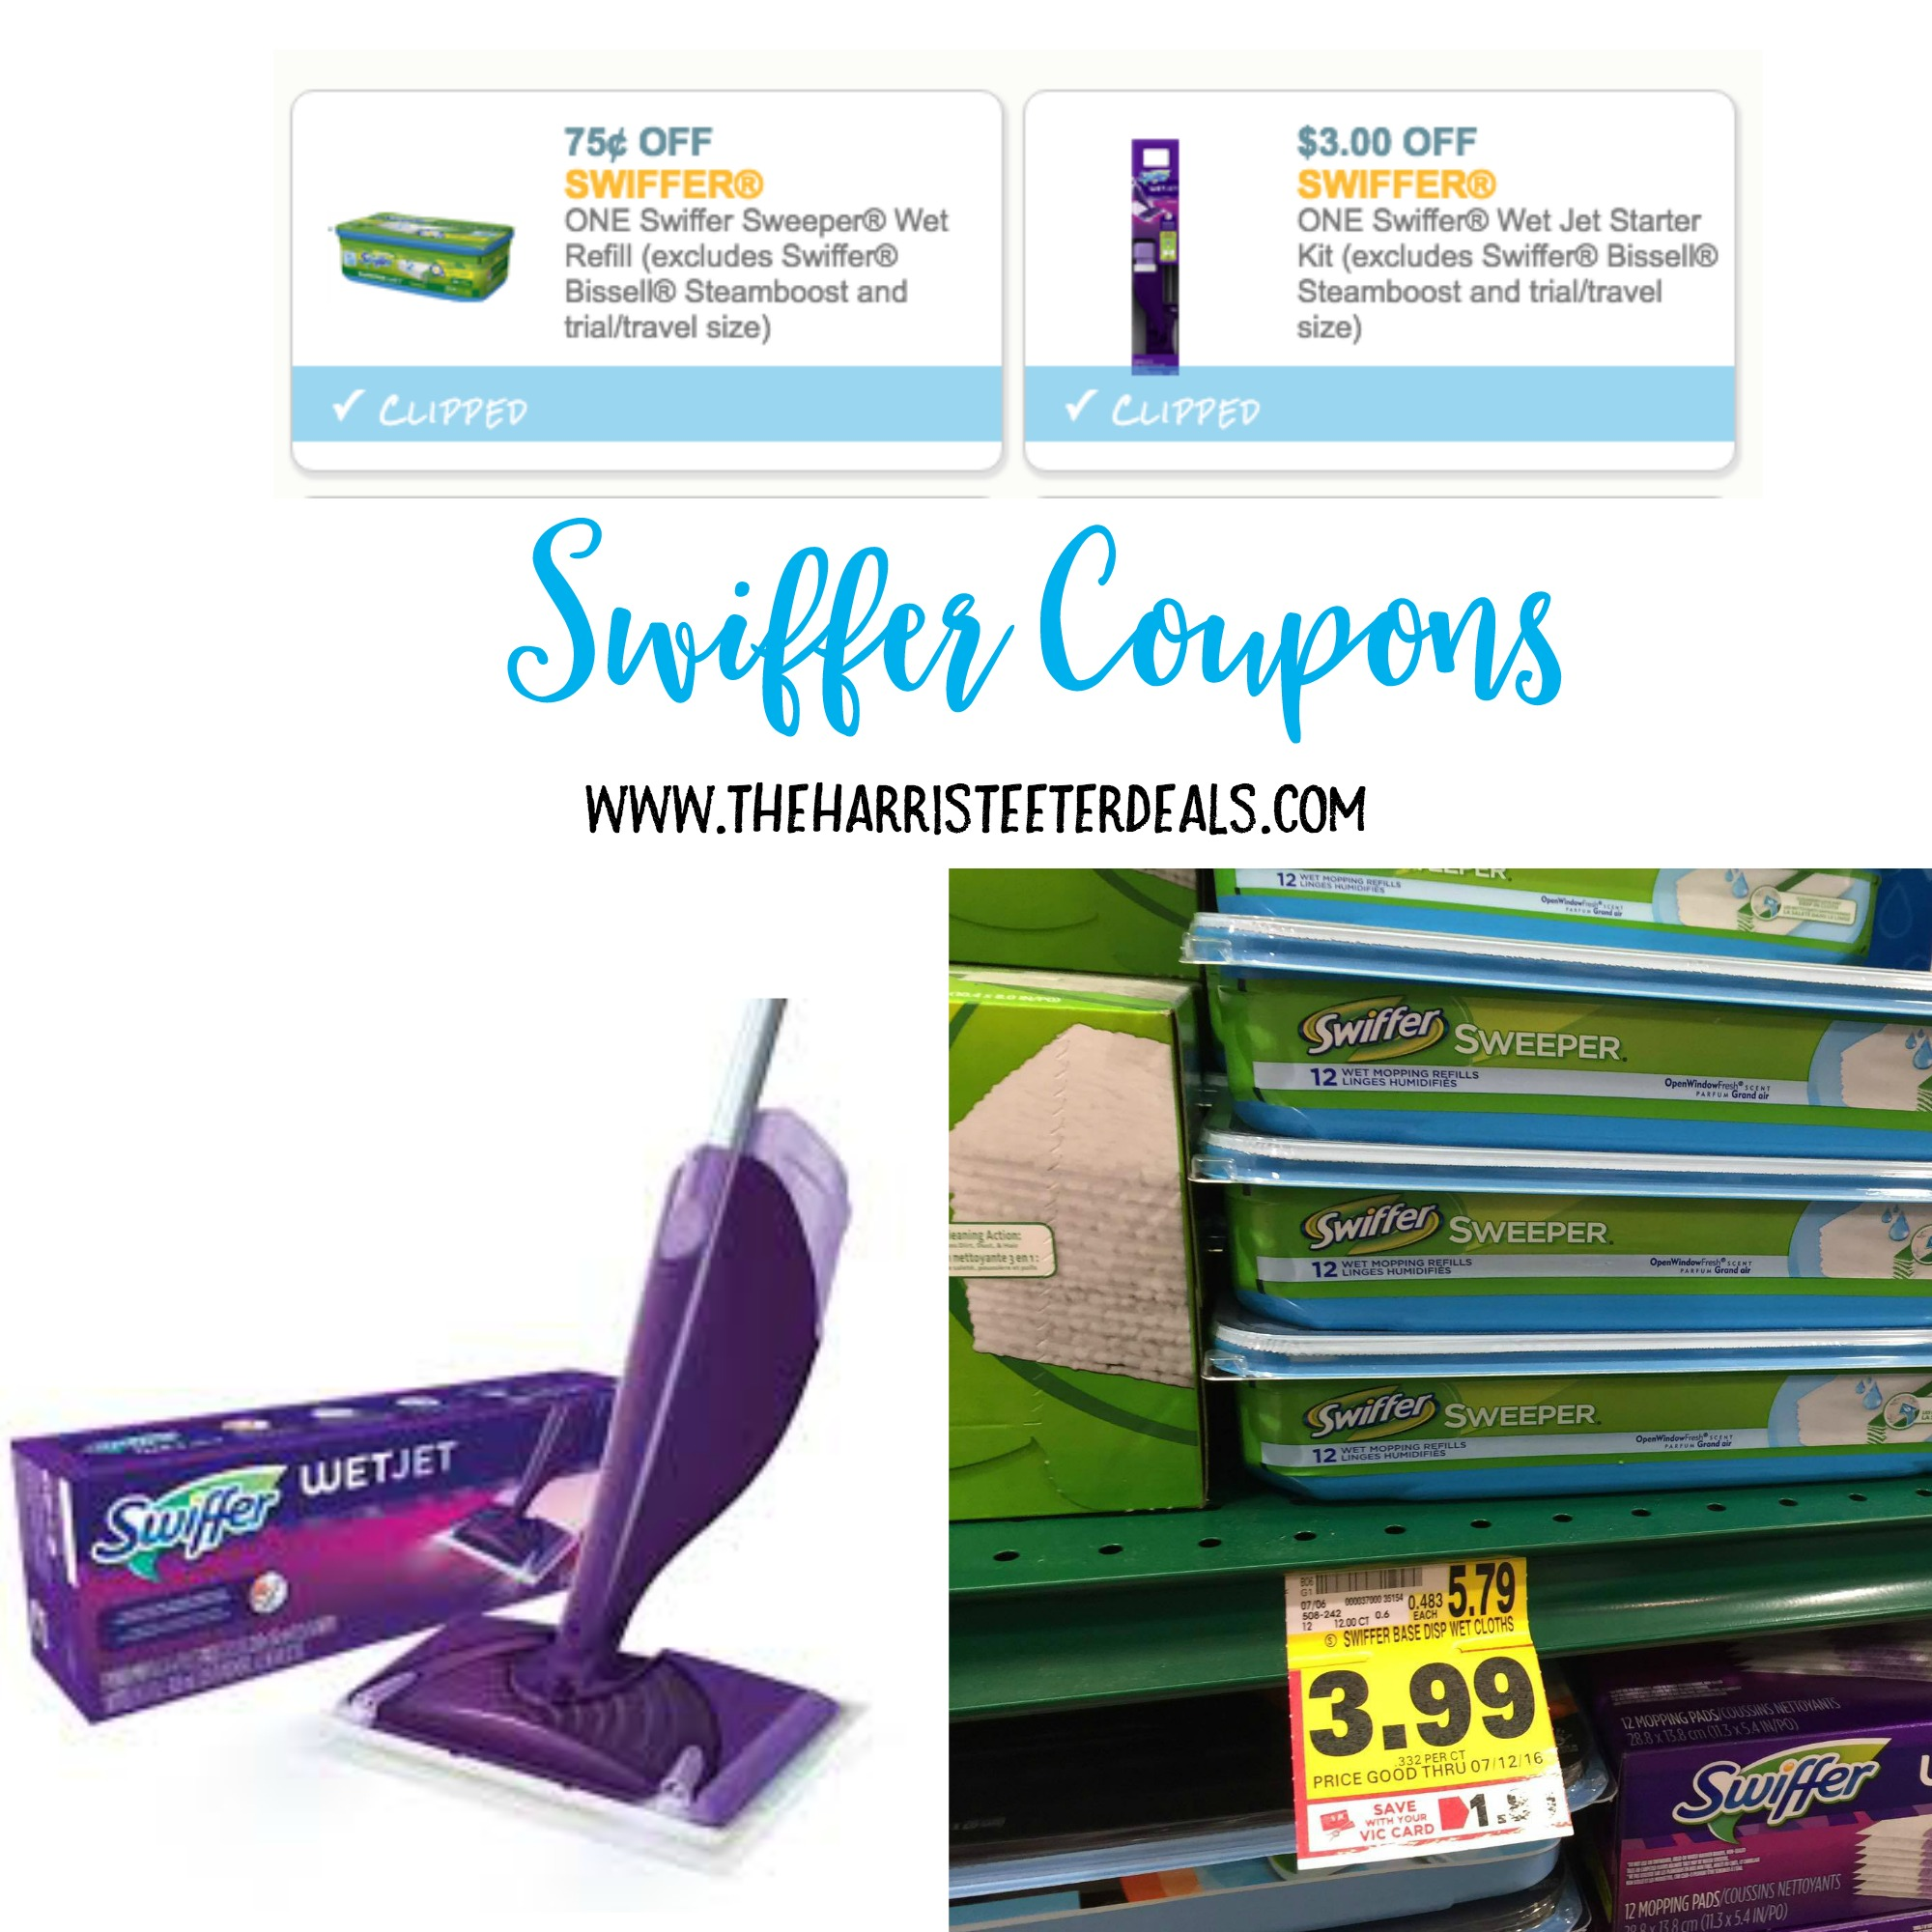 picture regarding Swiffer Coupons Printable identified as Swiffer moist jet discount codes may perhaps 2018 - Istockphoto coupon 2018